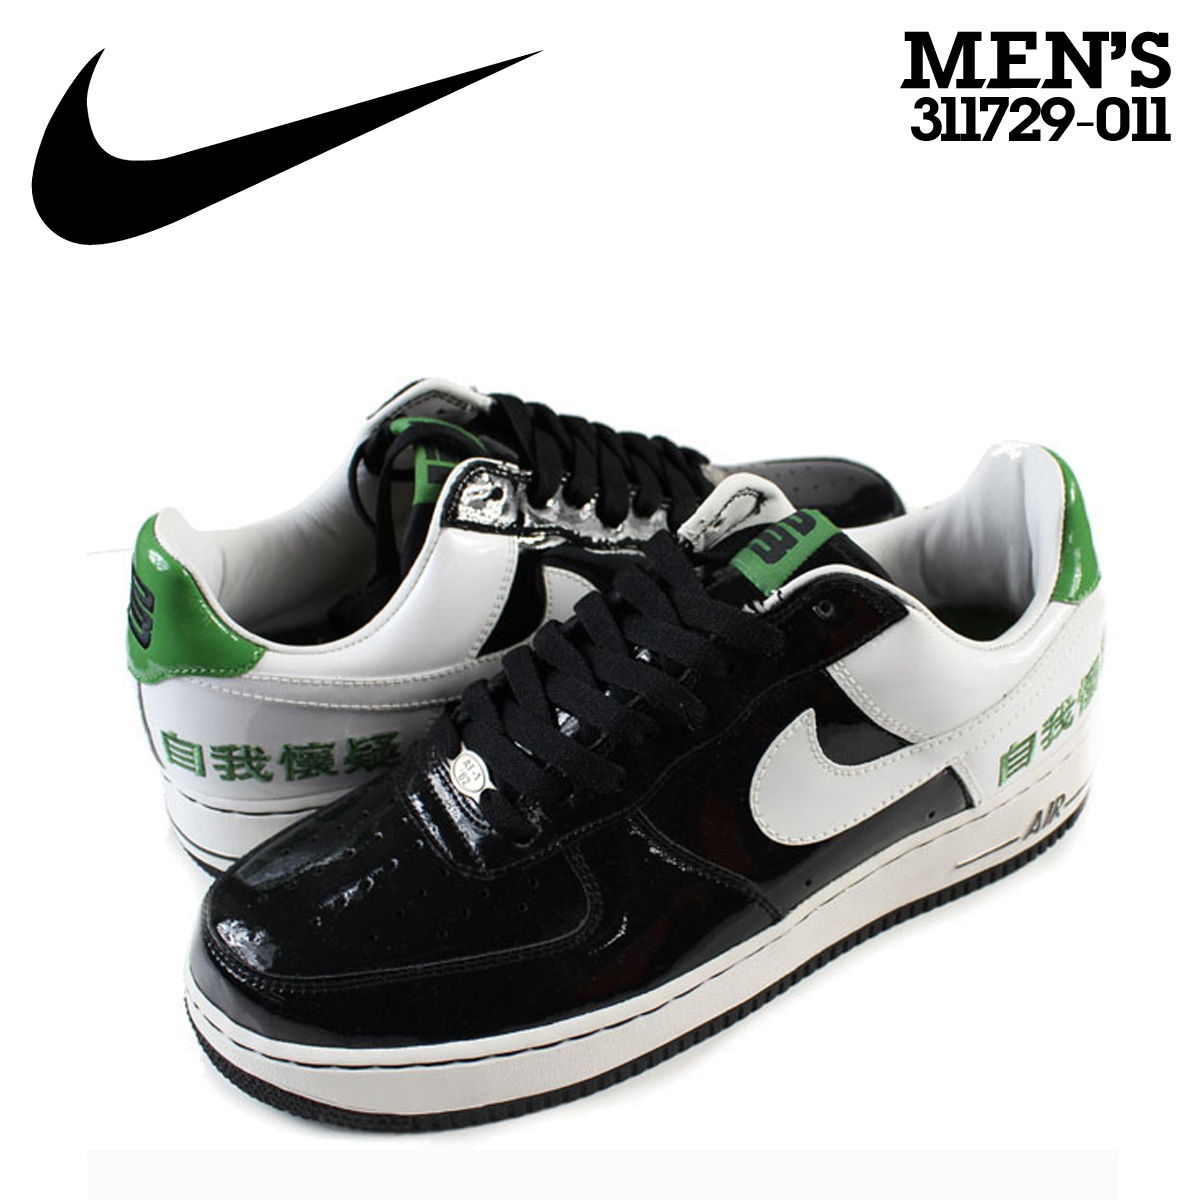 8b7b26396f8 Nike NIKE air force sneakers AIR FORCE 1 LOW LEBRON JAMES CHAMBER OF FEAR air  force LeBron James ego skepticism 311729-011 black mens